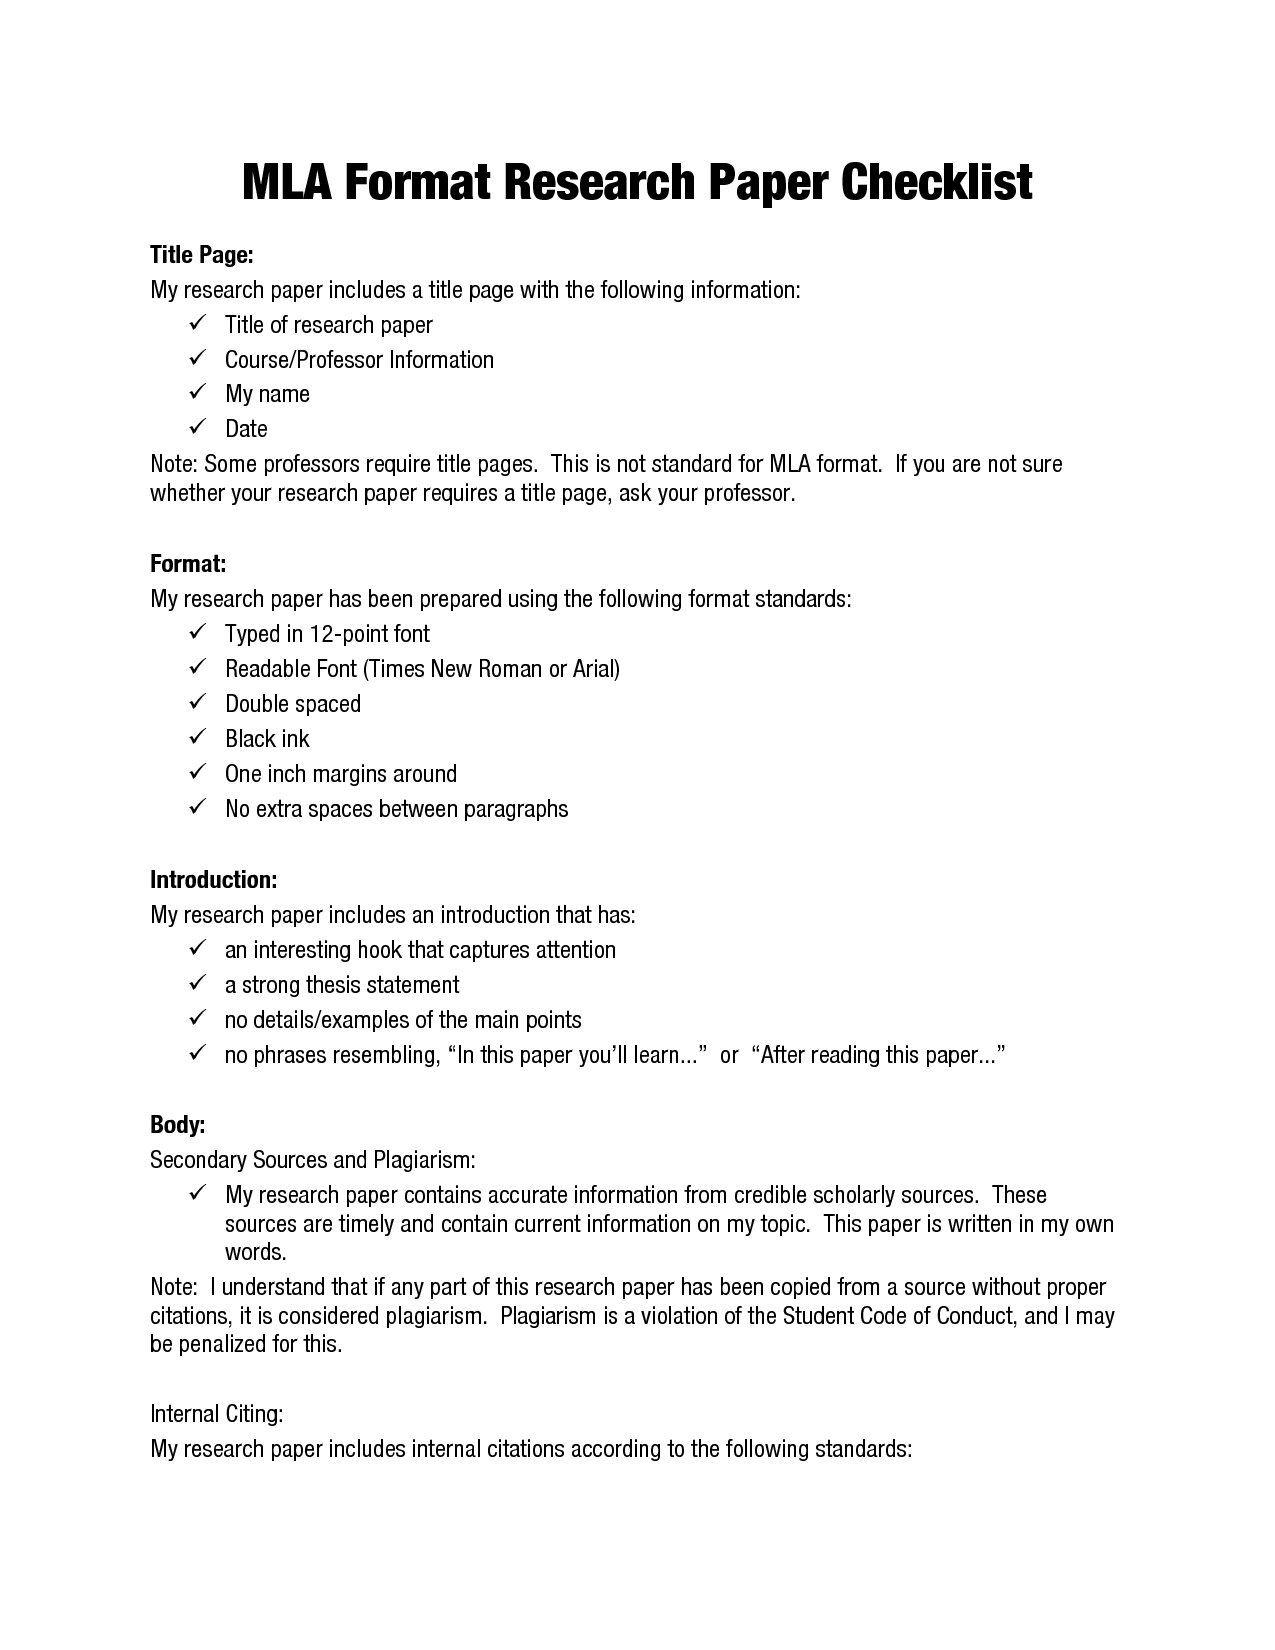 007 How To Make An Outline For Research Paper Mla Striking A Using Style Full